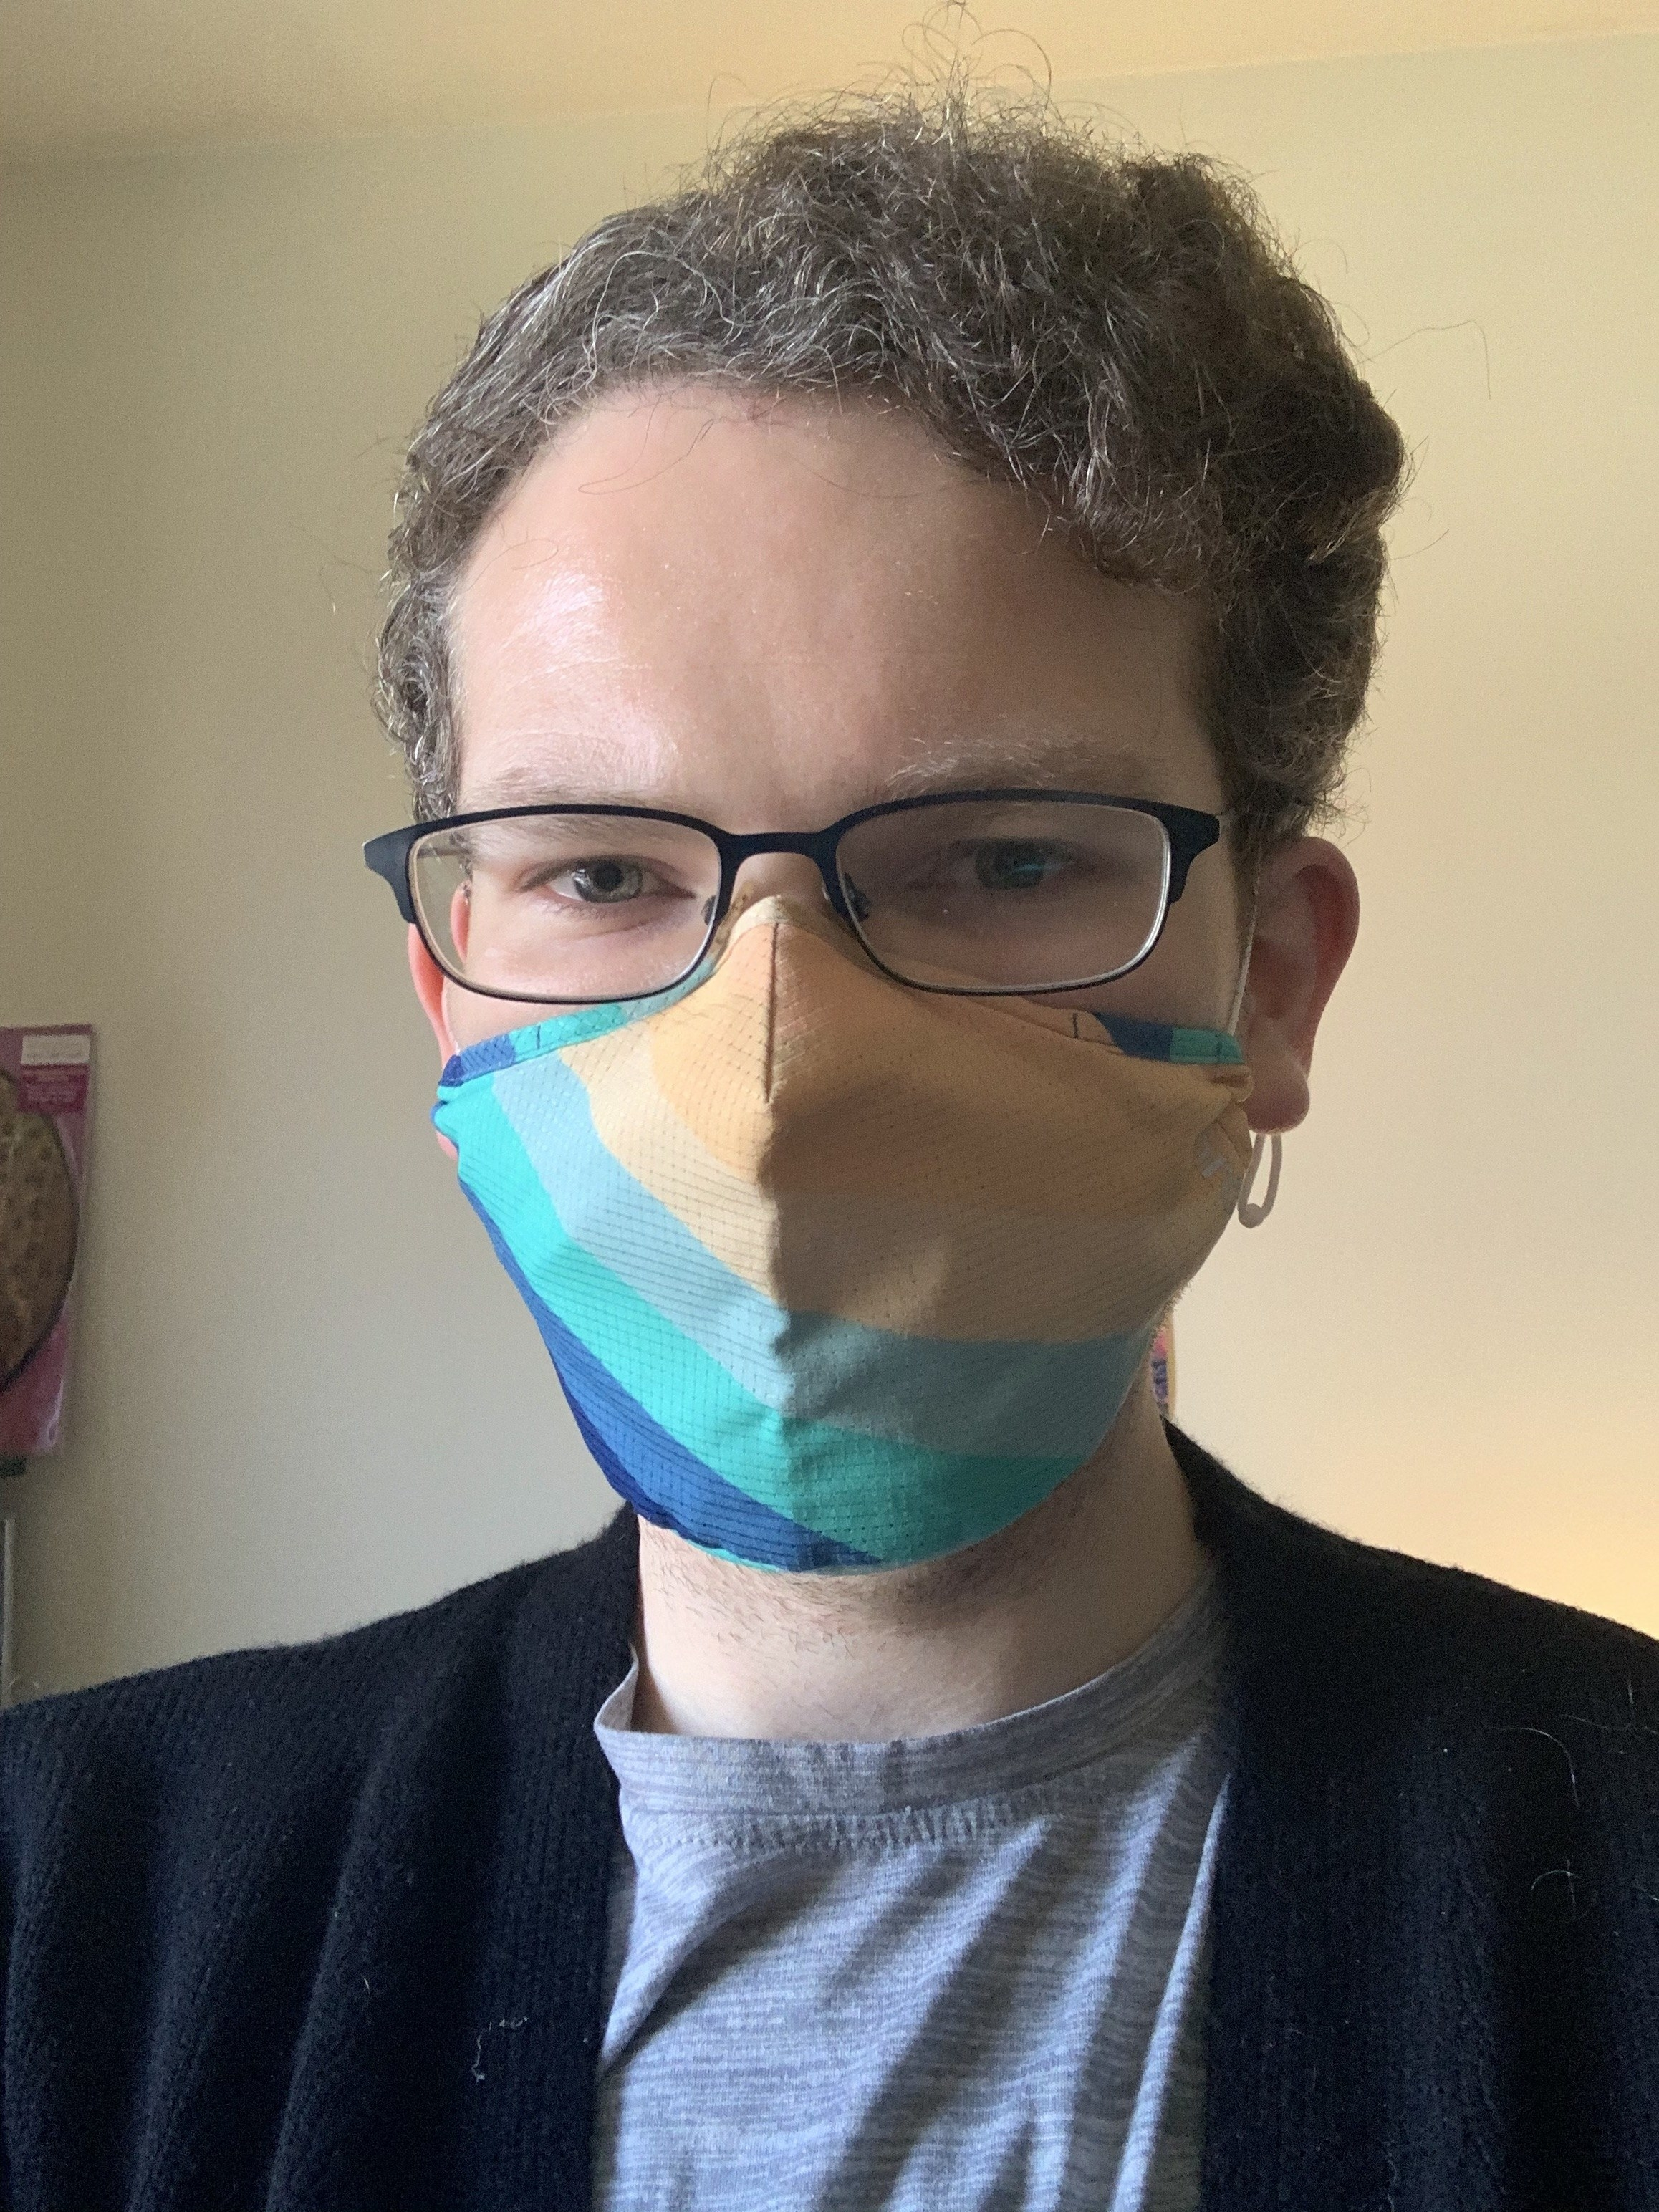 buzzfeed writer in a multicolored blue and yellow striped face mask